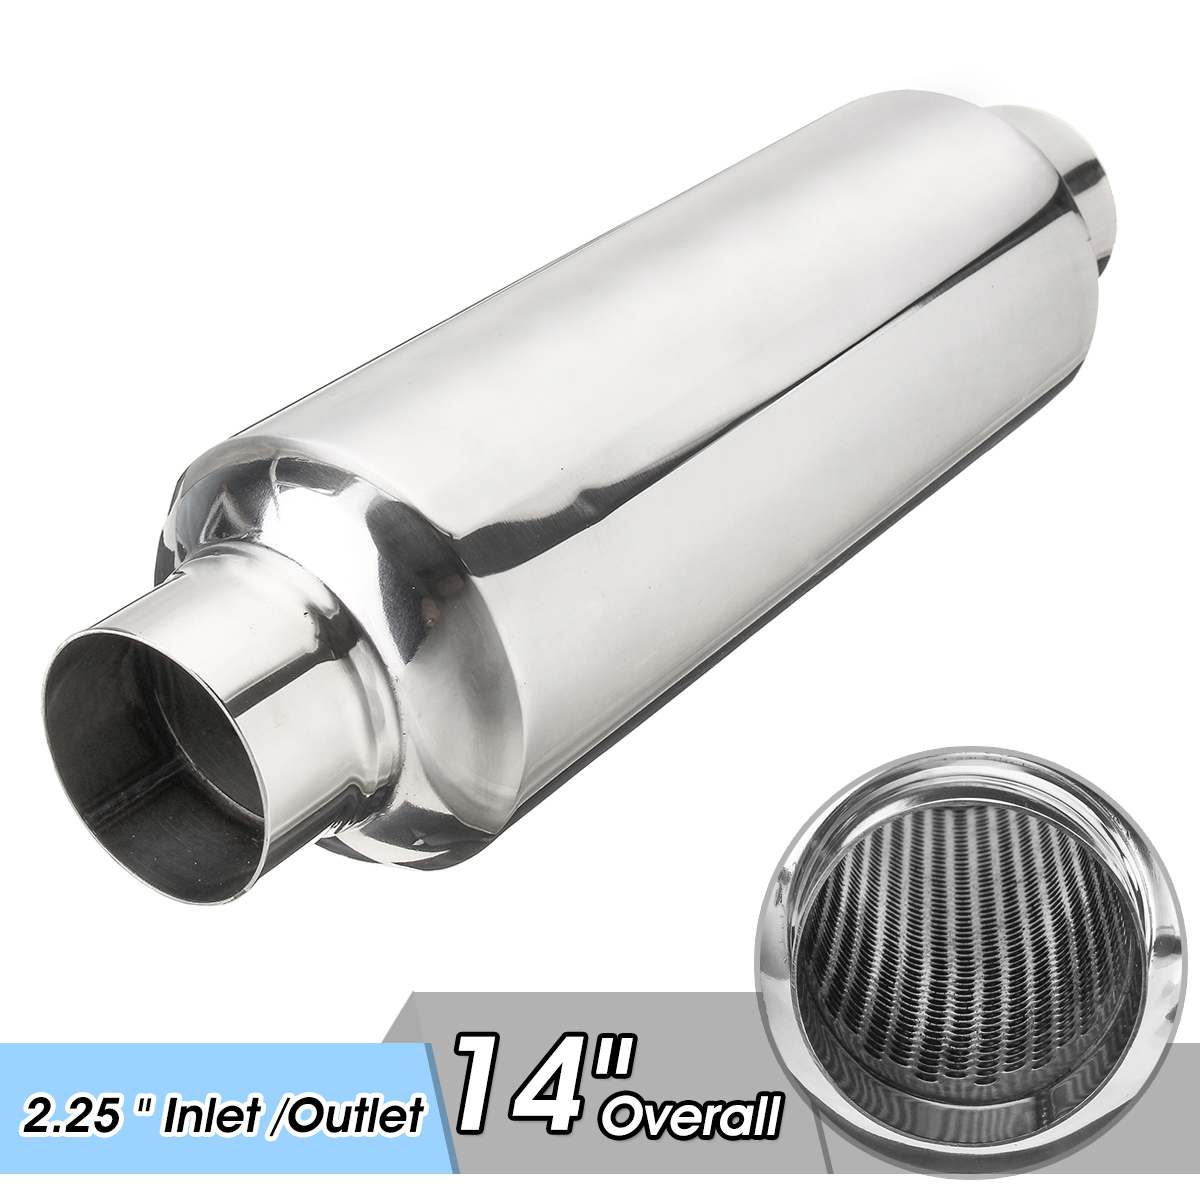 Universal Car Exhaust Muffler Resonator 2 25 Inlet Outlet Exhaust Tip Pipe Tube Stainless Steel